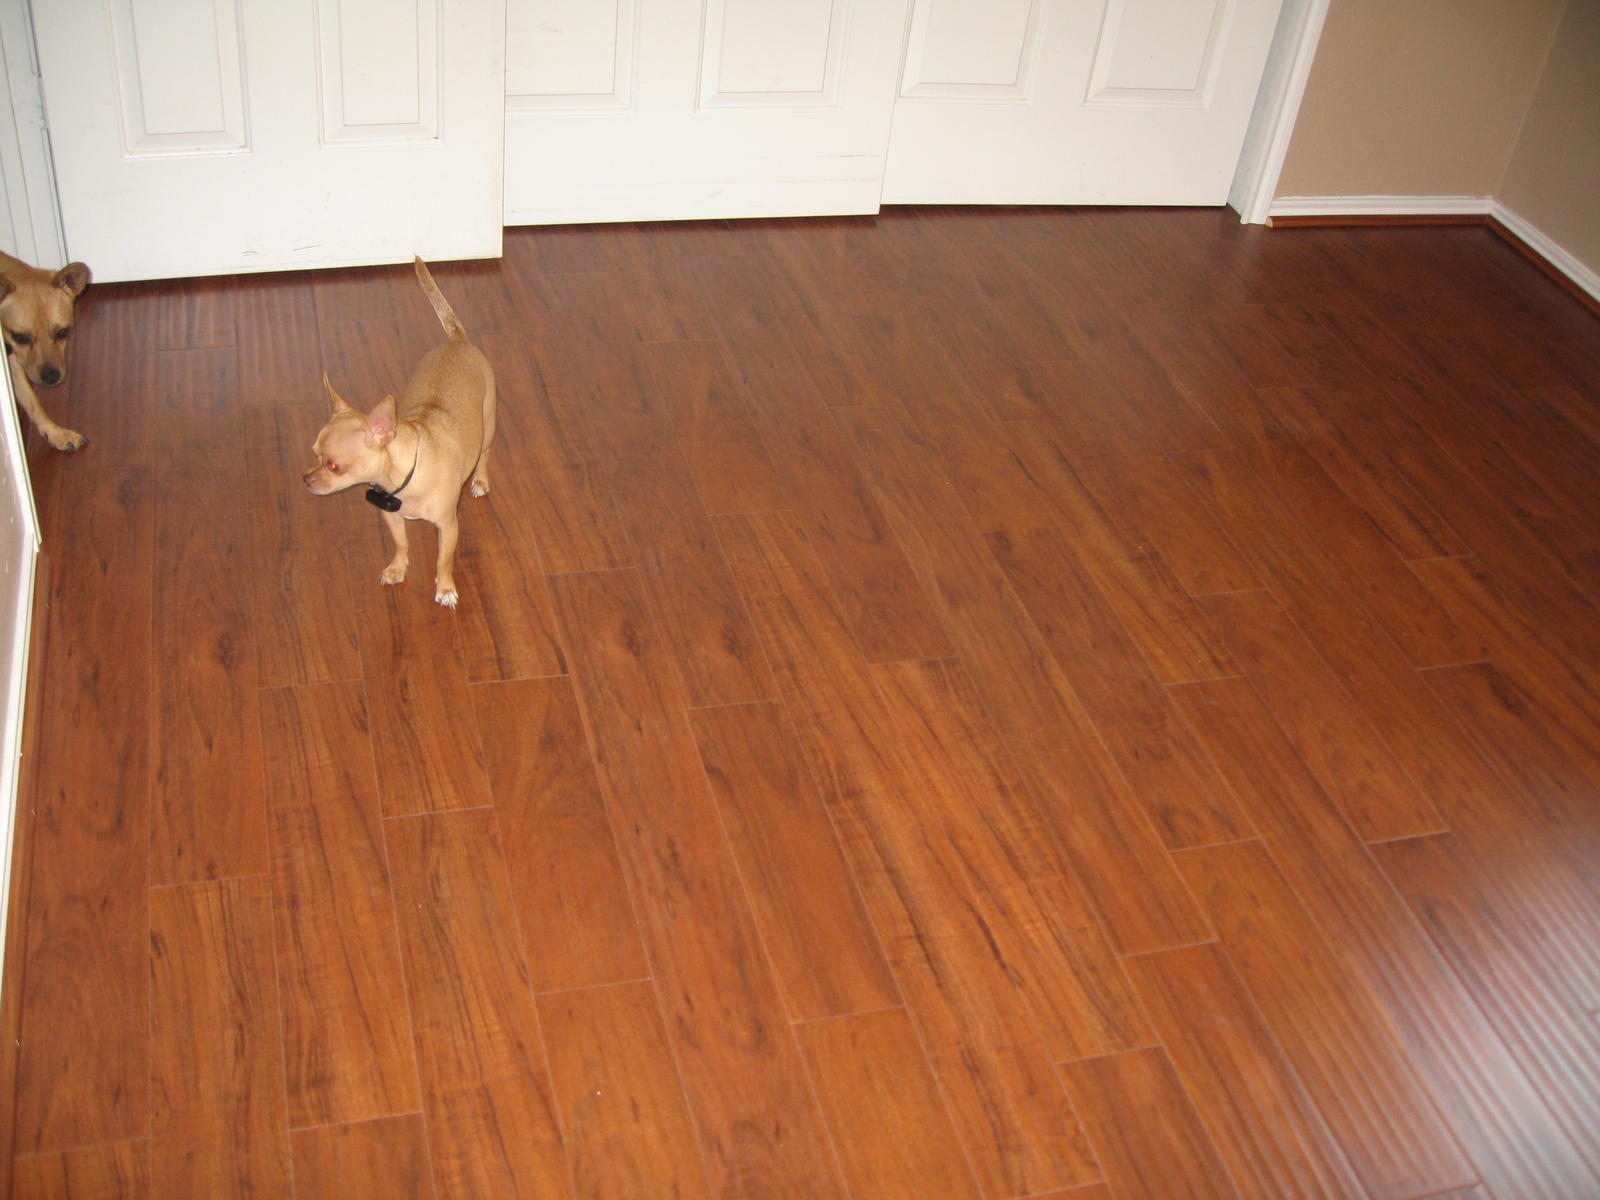 Average Cost Of Hardwood Floors Laura Williams - How much are hardwood floors